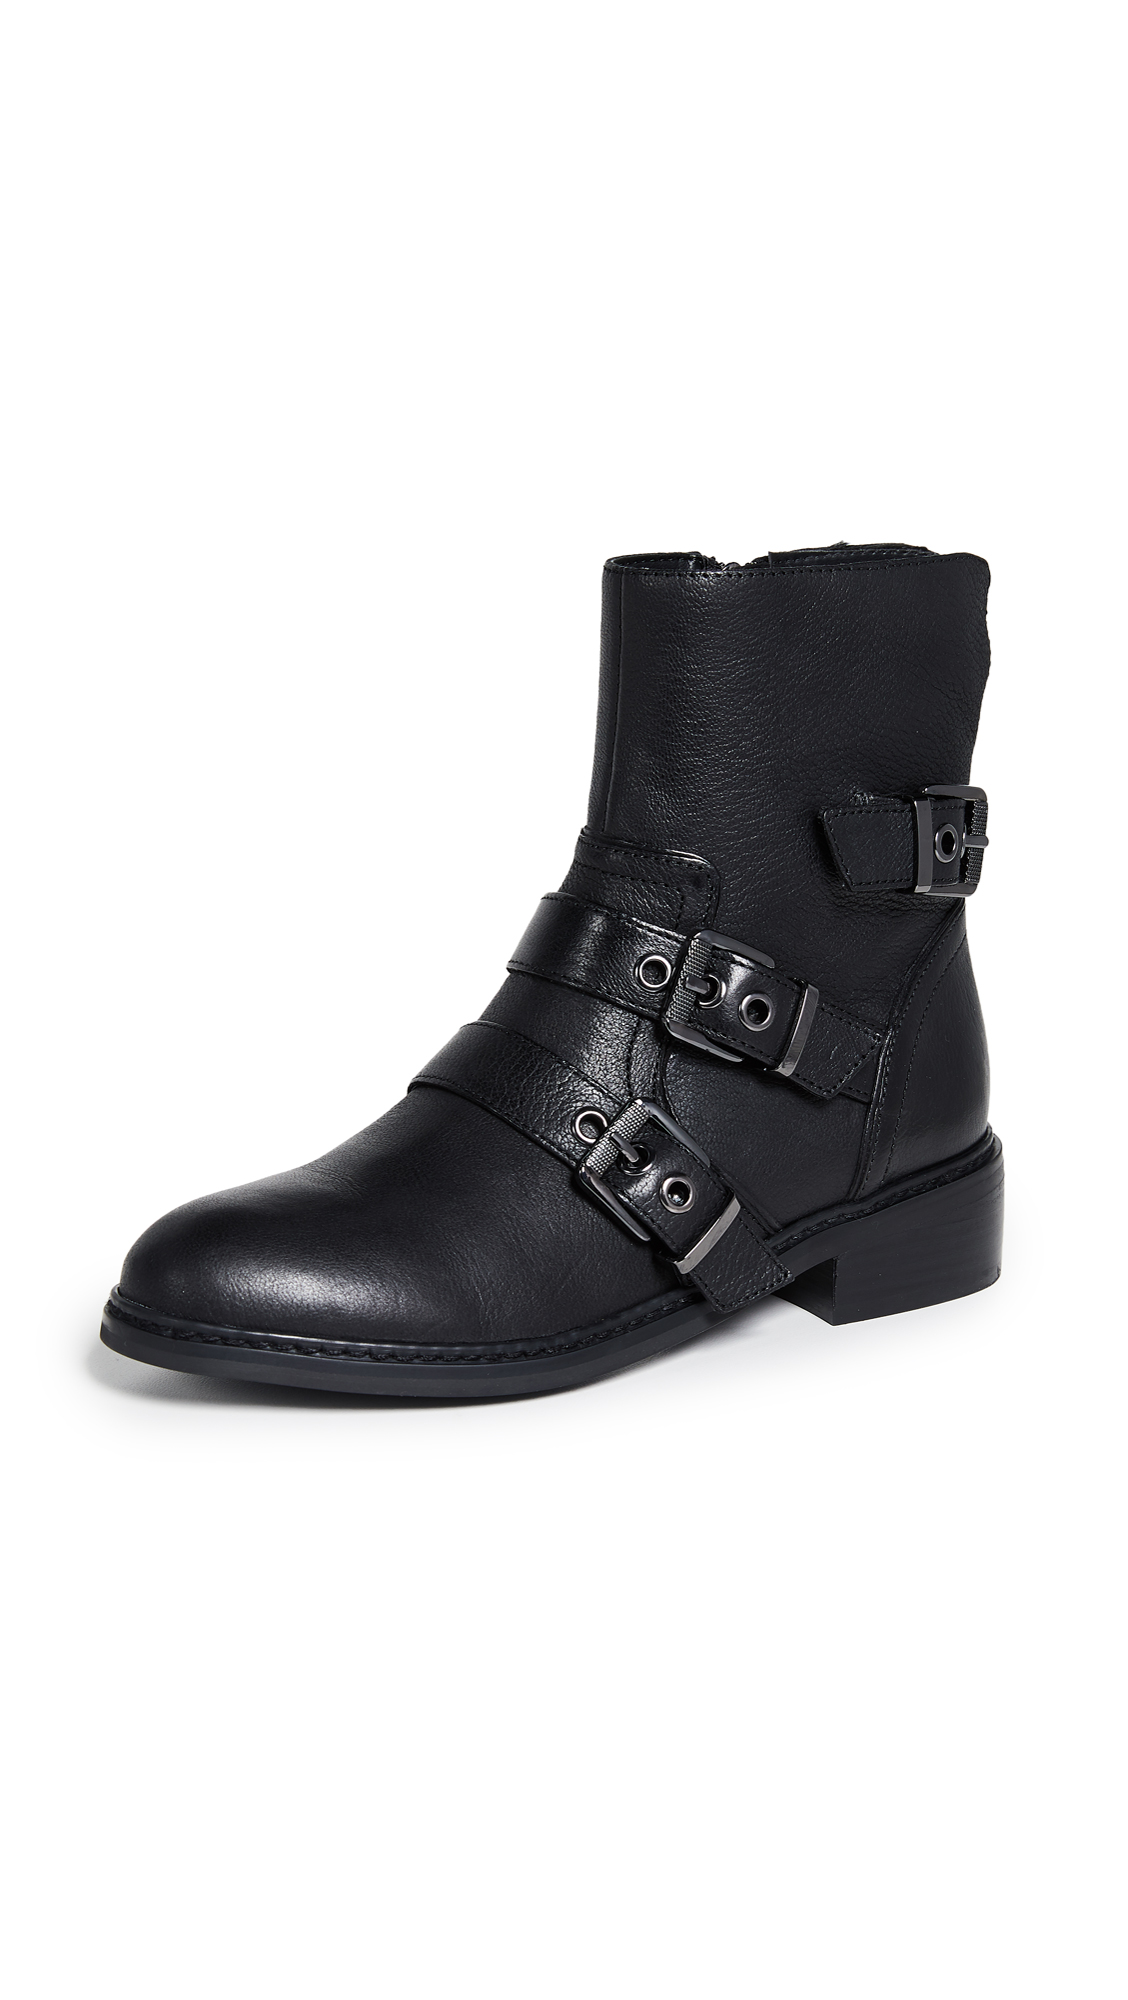 KENDALL + KYLIE Nori Moto Boots - Black